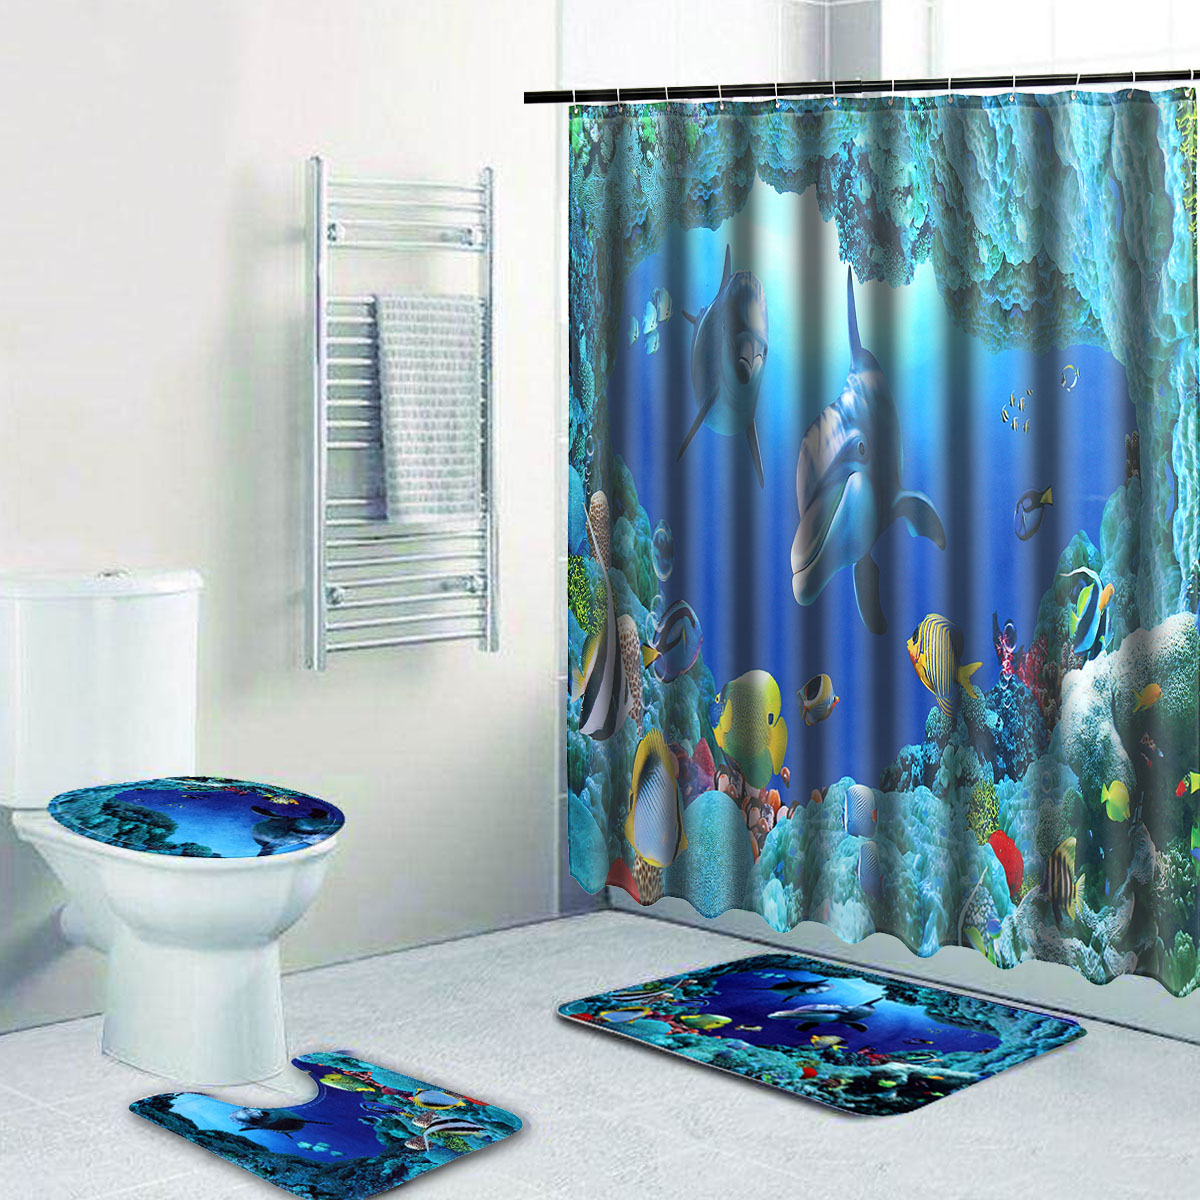 180x180cm Shower Curtain Bath Mat Set Ocean Dolphin Deep Sea Bathroom Waterproof With 12 Hooks Toilet Cover In Curtains From Home